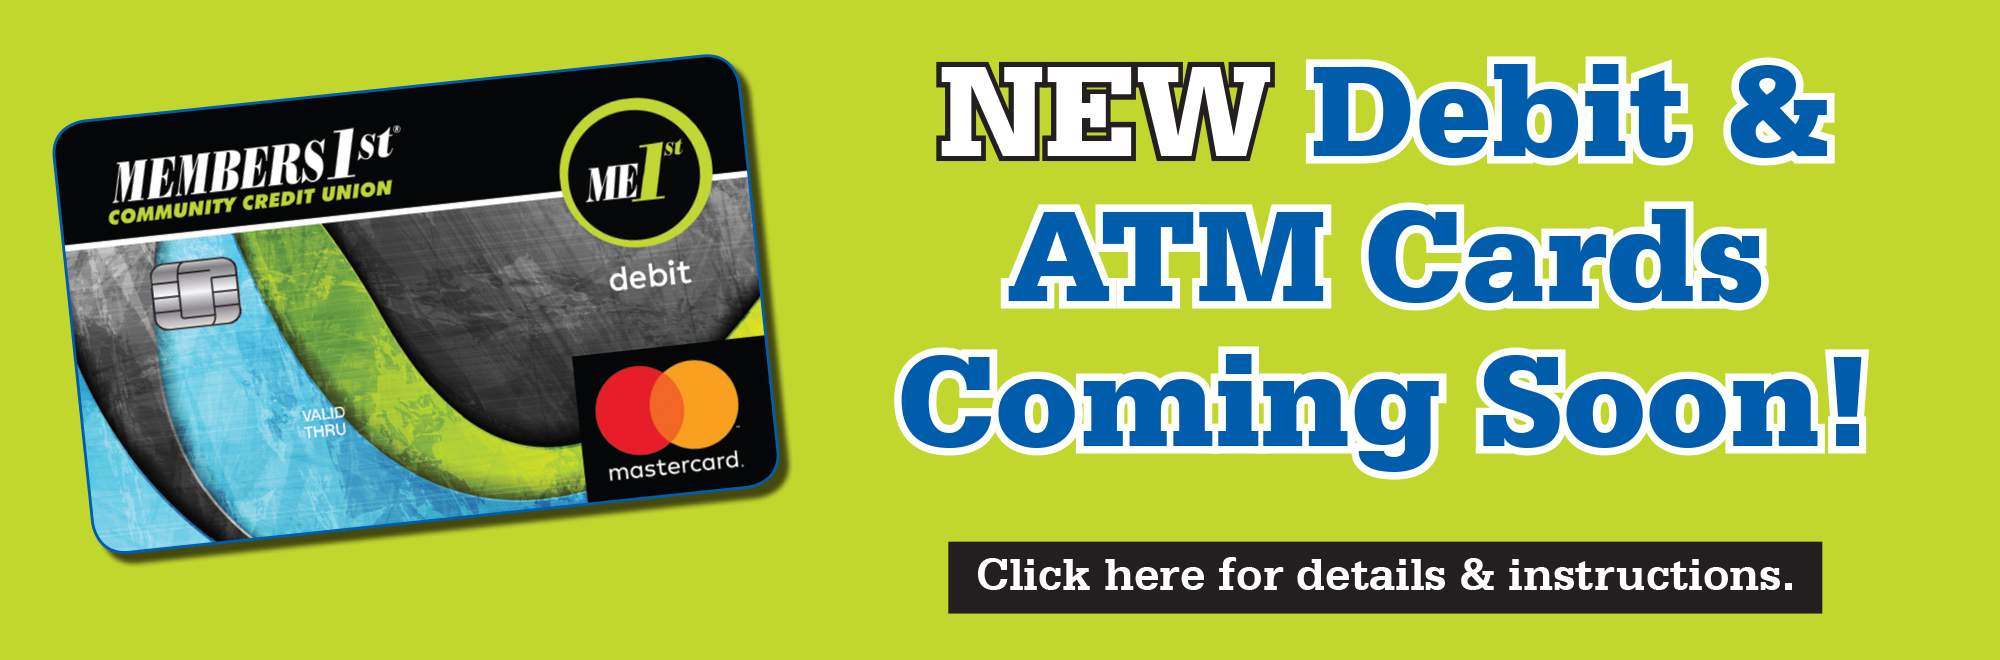 New Debit-ATM cards coming soon! Click here for details.